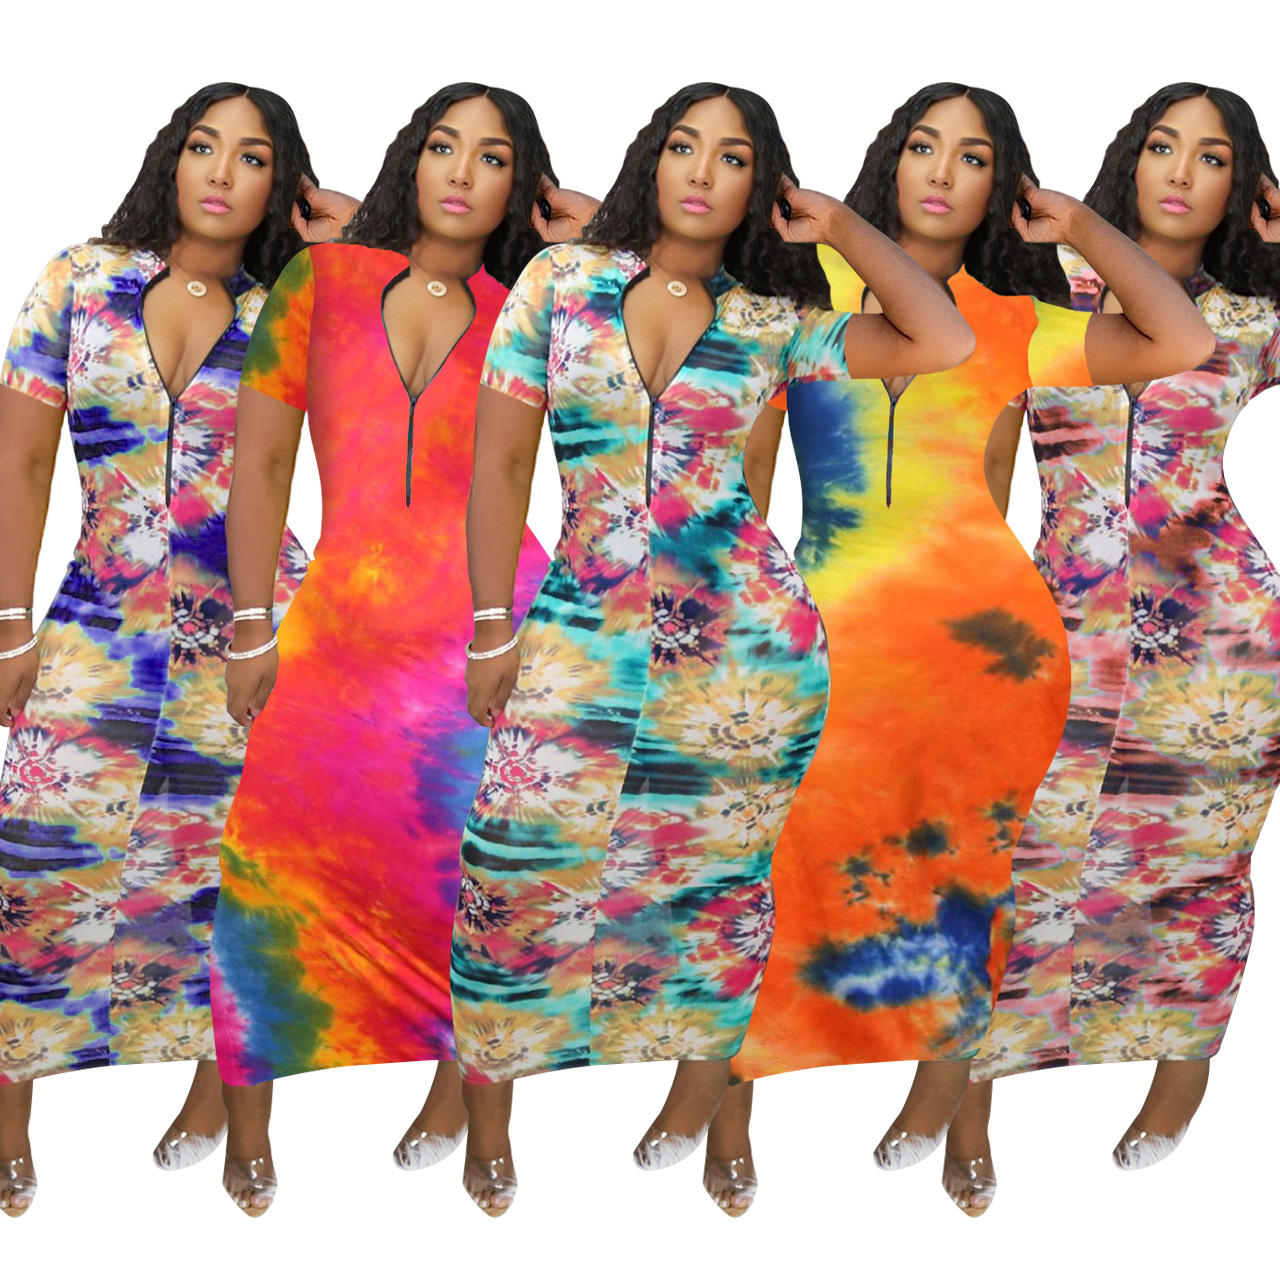 LDDRESS hot style colorful aperture printed sexy dress zips open and closes plus size summer dresses women clothing